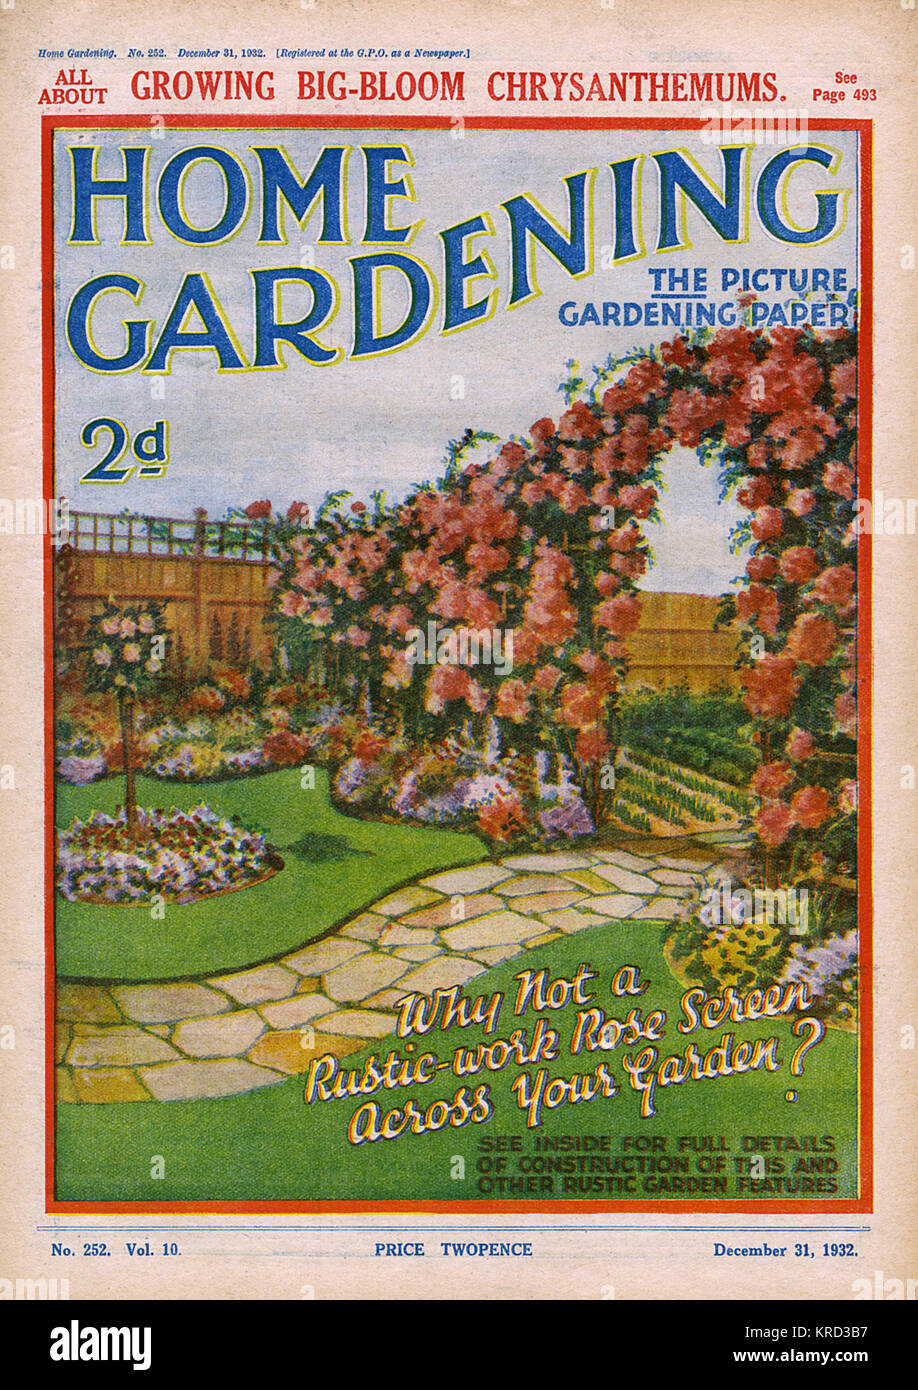 Front cover of Home Gardening magazine featuring a suggestion to create a rustic work rose screen across one's - Stock Image